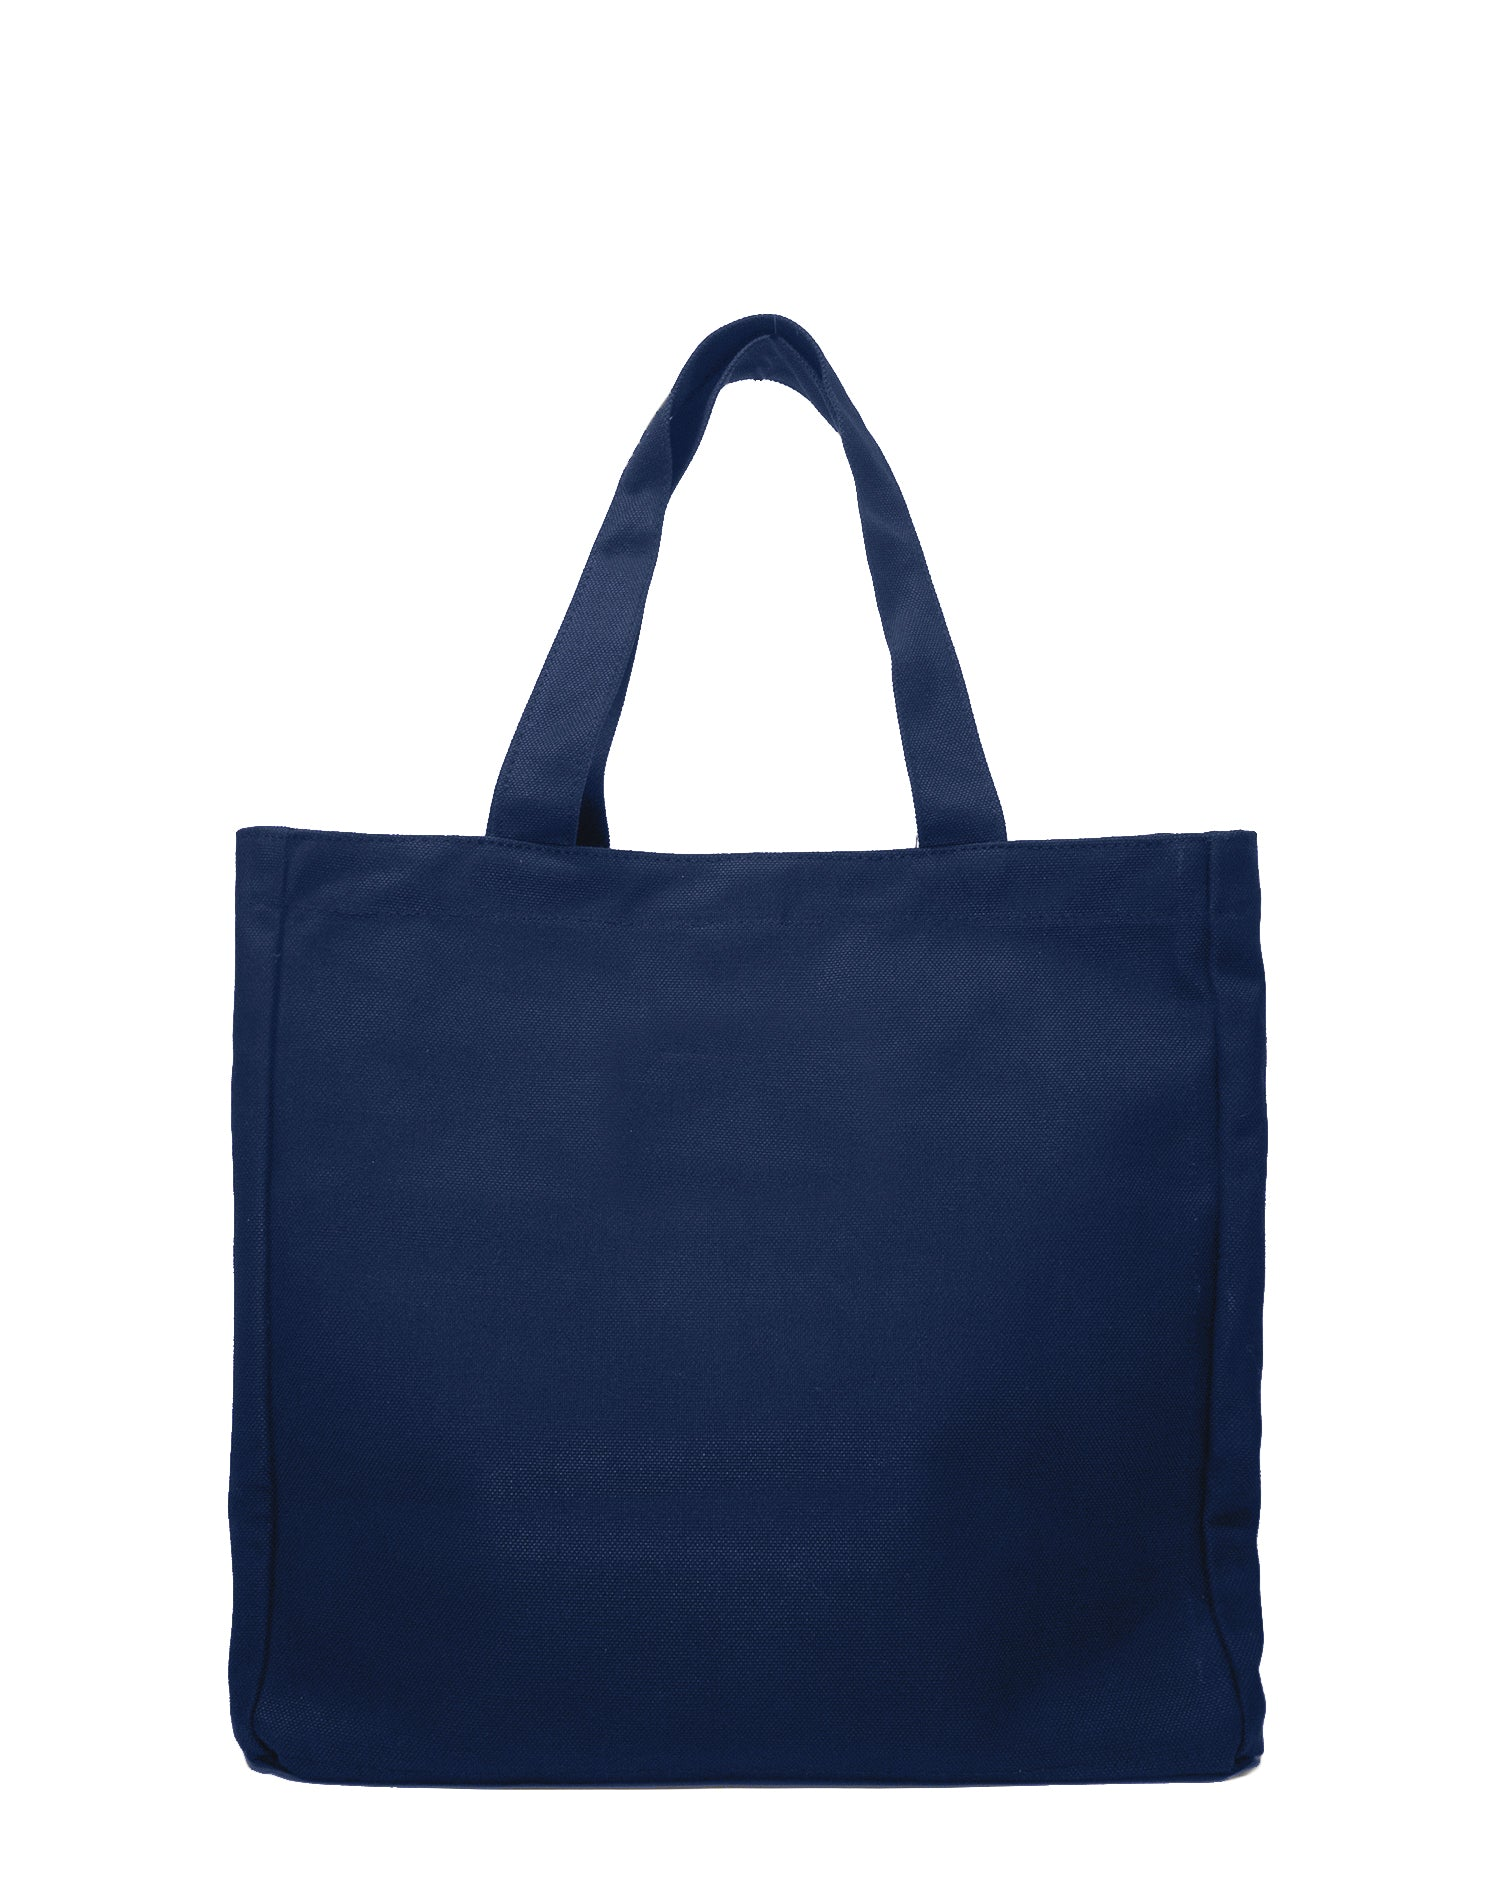 Navy Basic Canvas Tote Bag.藏青色帆布側背袋